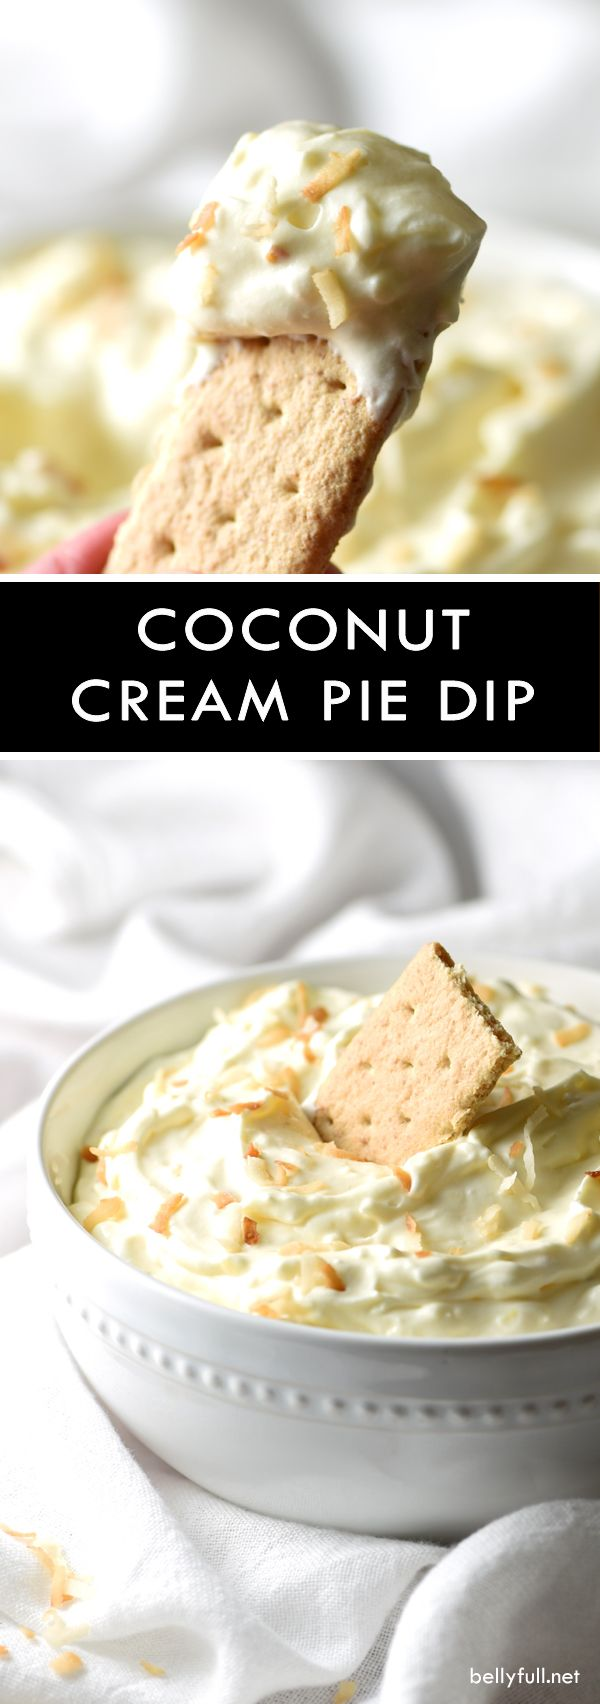 This sweet and silky Coconut Cream Pie Dip calls for only 6 ingredients and 10 minutes of prep time. Great for parties!